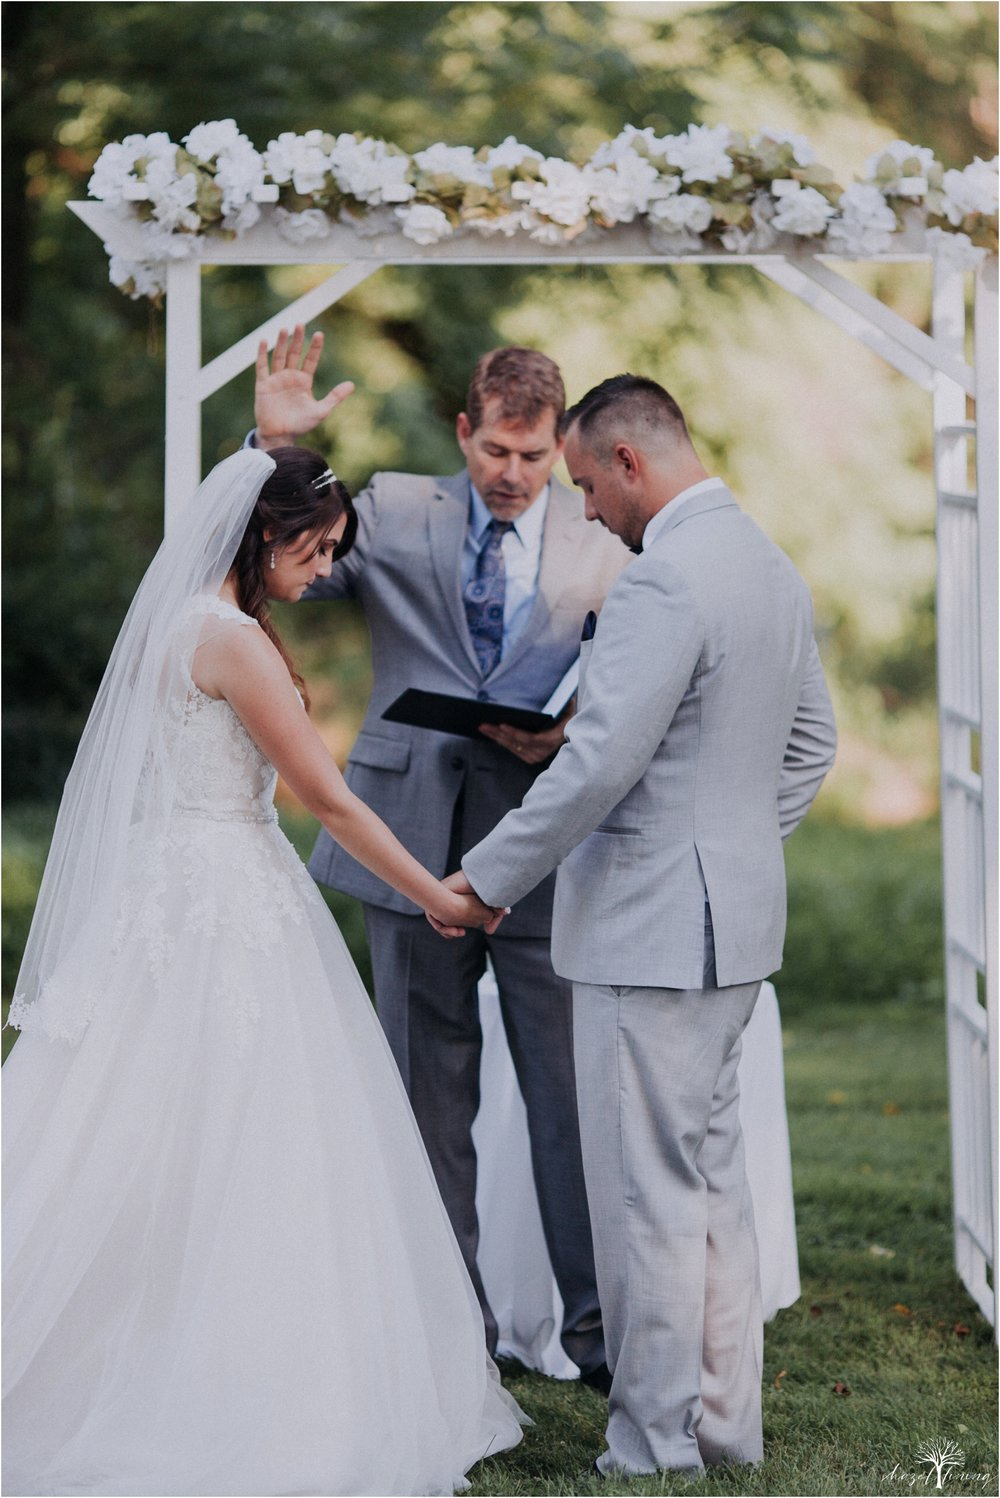 cassie-depinto-tyler-bodder-playwicki-farm-buck-hotel-featserville-trevose-pennsylvania-summer-outdoor-wedding-hazel-lining-travel-wedding-elopement-photography_0220.jpg